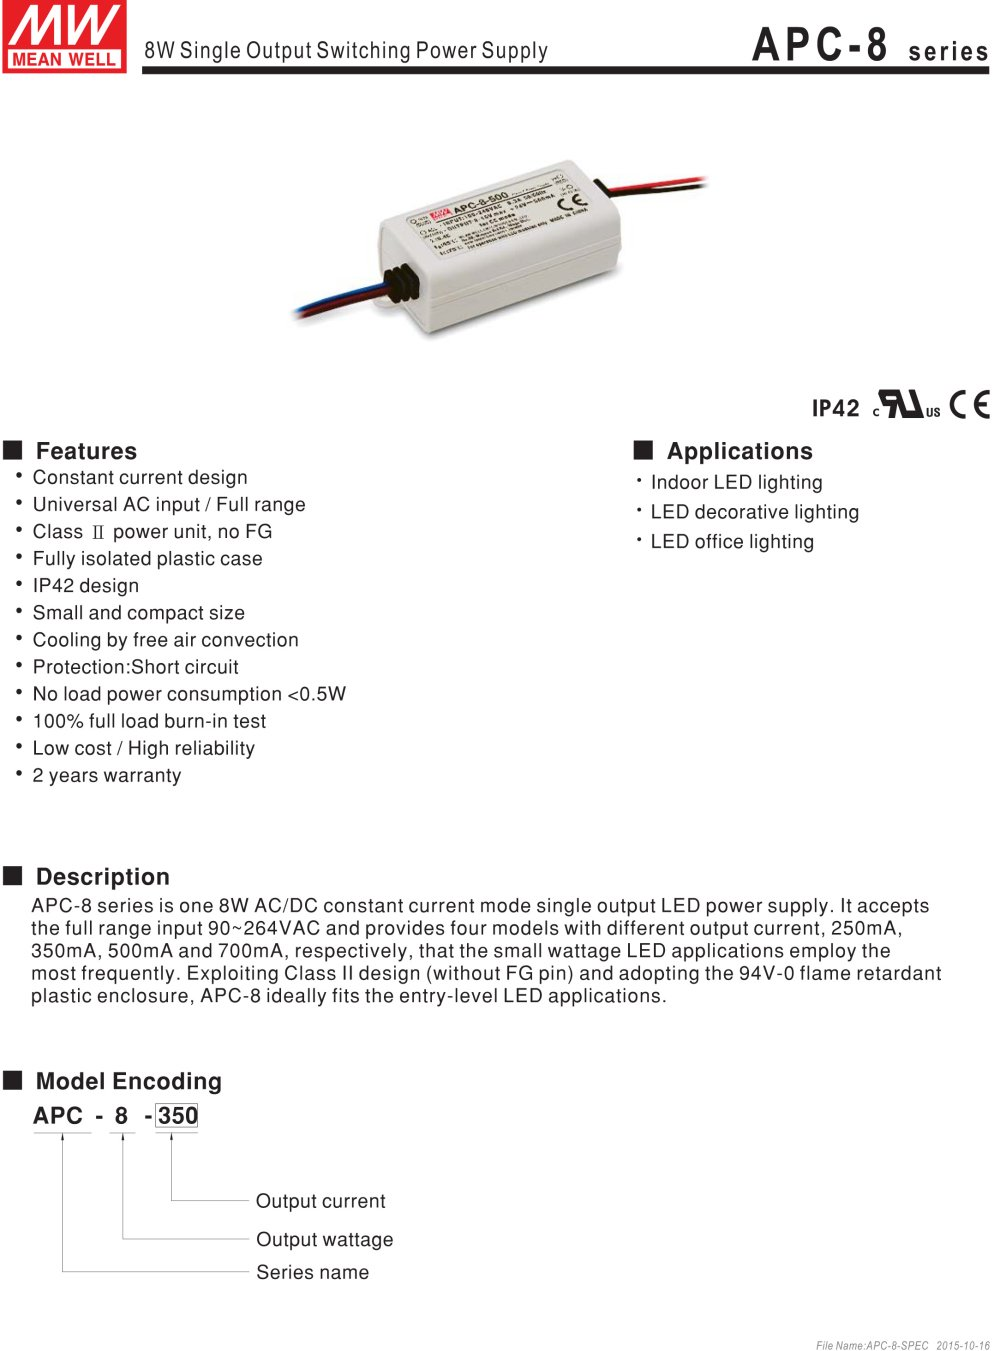 Mean Well Switching Power Supply Led Driver110v 220v Ac Dc Single Circuit Series Protection Output Constant Currenttransformer 8w 16 32v 250ma Apc 8 250